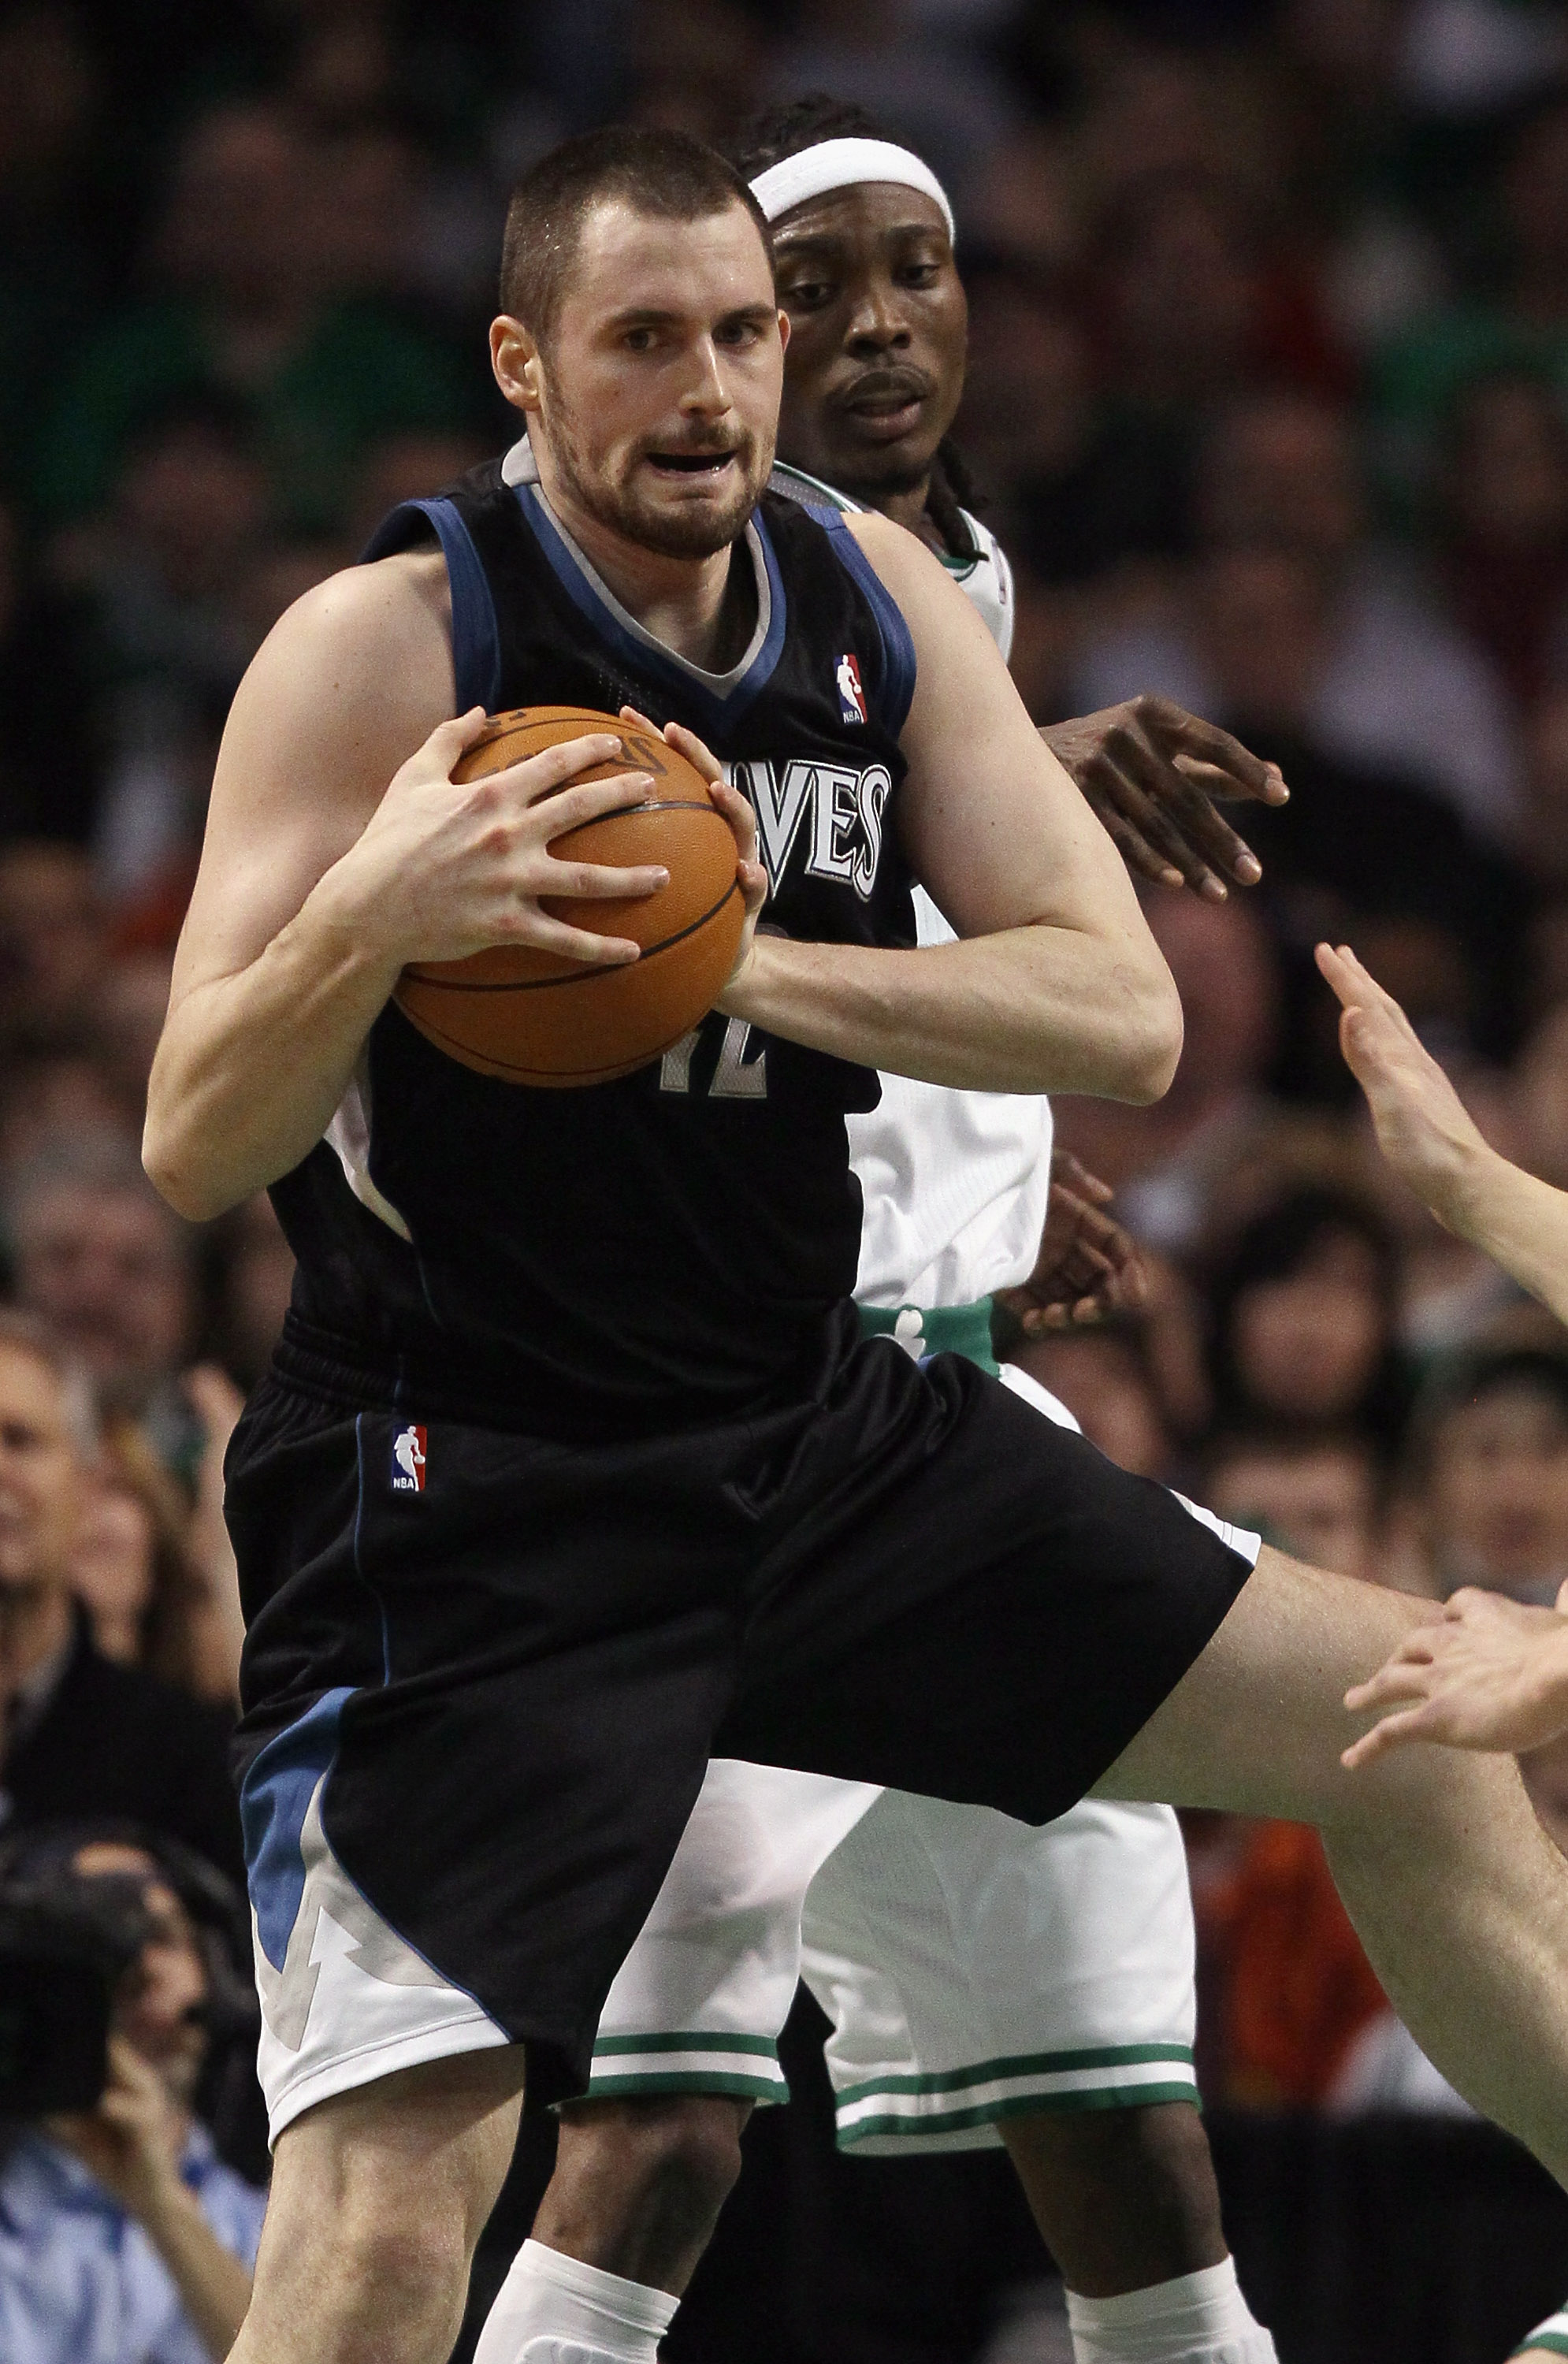 BOSTON, MA - JANUARY 03:  Kevin Love #42 of the Minnesota Timberwolves grabs the rebound before Marquis Daniels #8 of the Boston Celtics on January 3, 2011 at the TD Garden in Boston, Massachusetts. NOTE TO USER: User expressly acknowledges and agrees tha